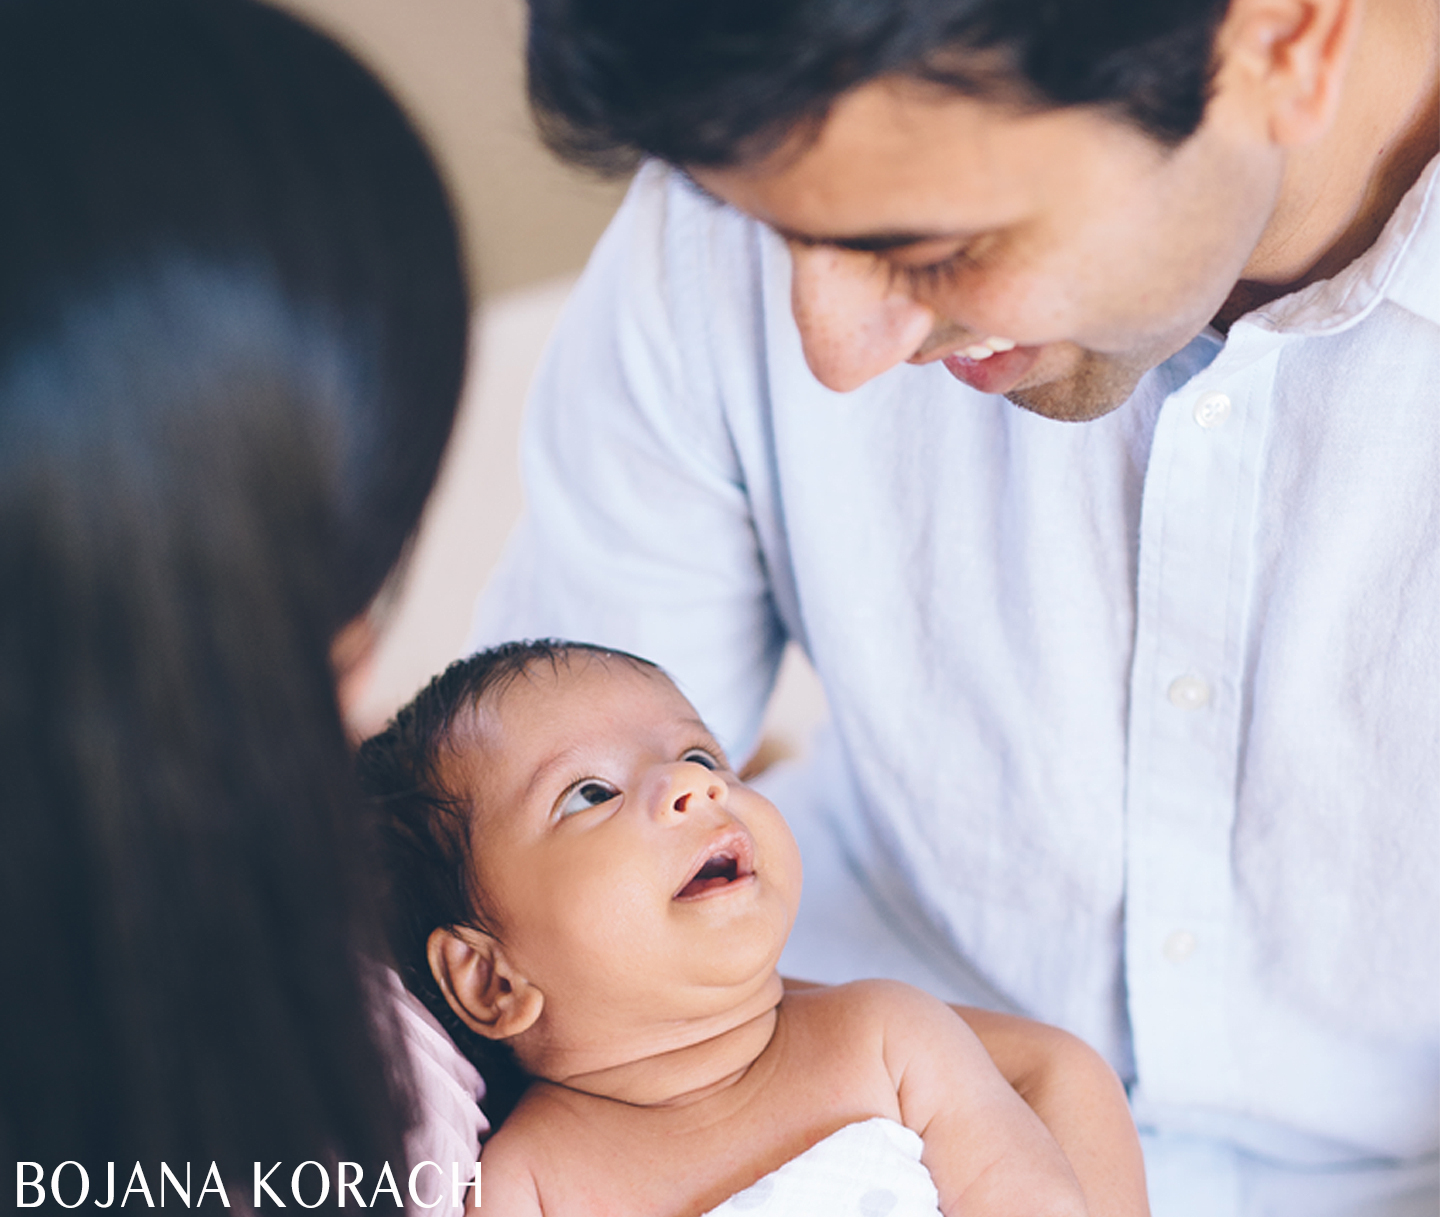 newborn baby boy looks lovingly at his father